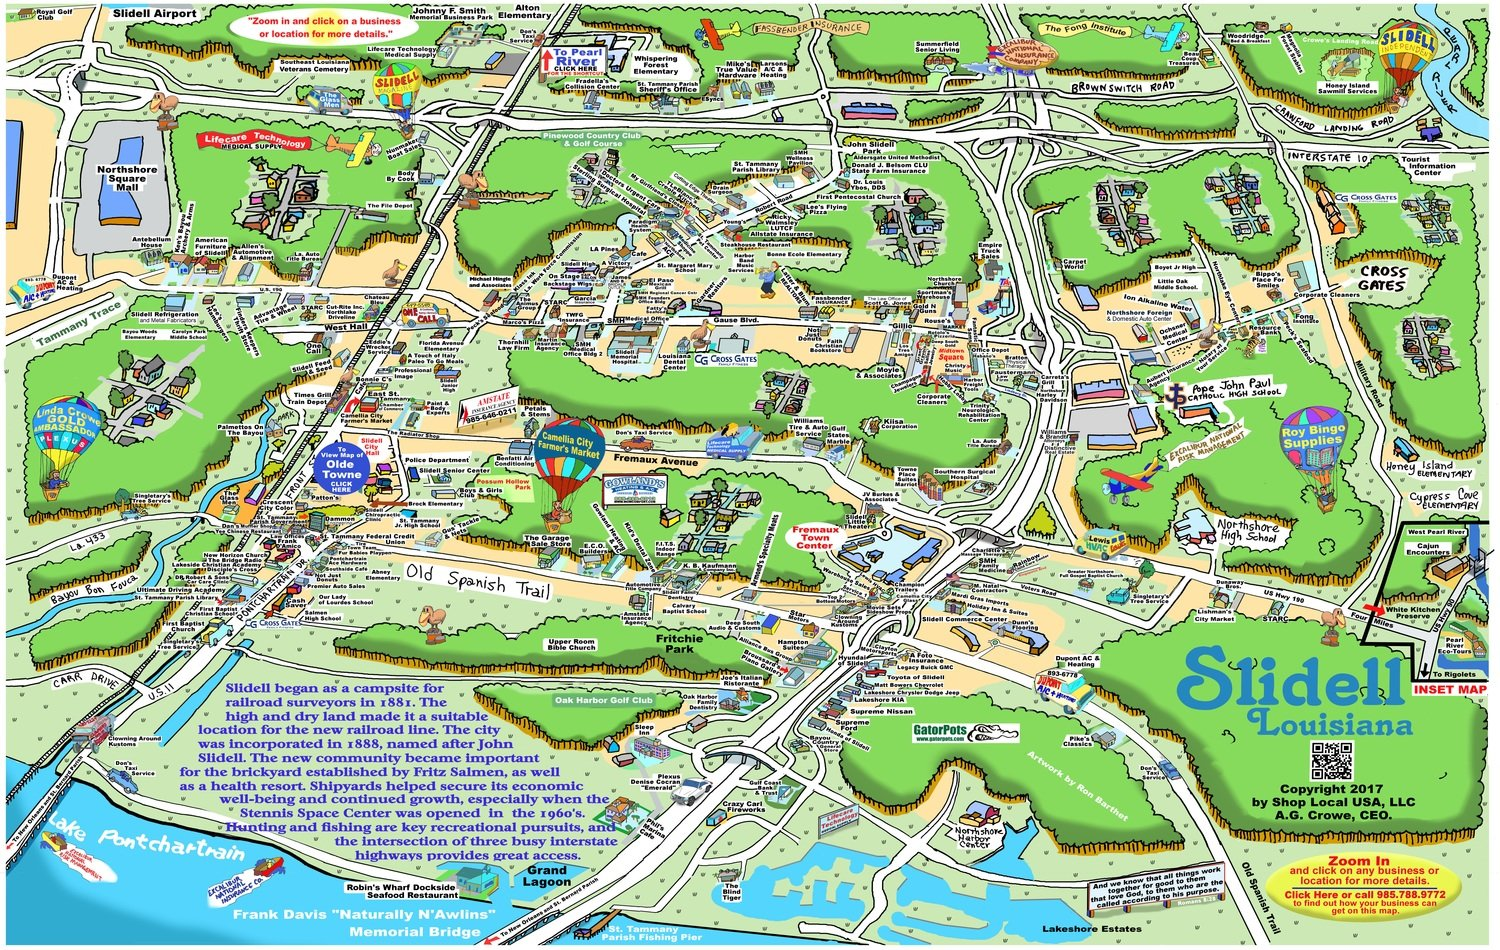 "24"" X 36"" Full Color Caricature Rendering of Slidell, LA"